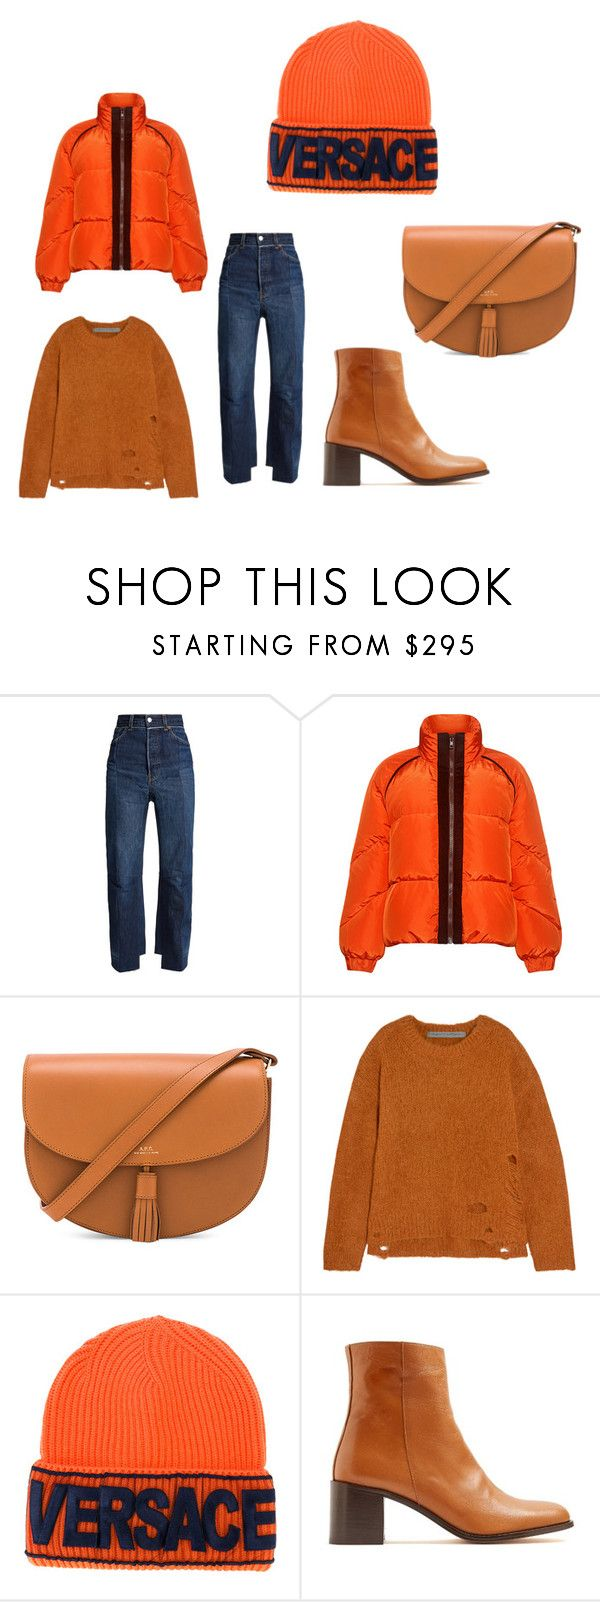 """""""Untitled #3306"""" by sarasilva07 ❤ liked on Polyvore featuring Vetements, Ganni, A.P.C., Raquel Allegra, Versace and Maryam Nassir Zadeh"""